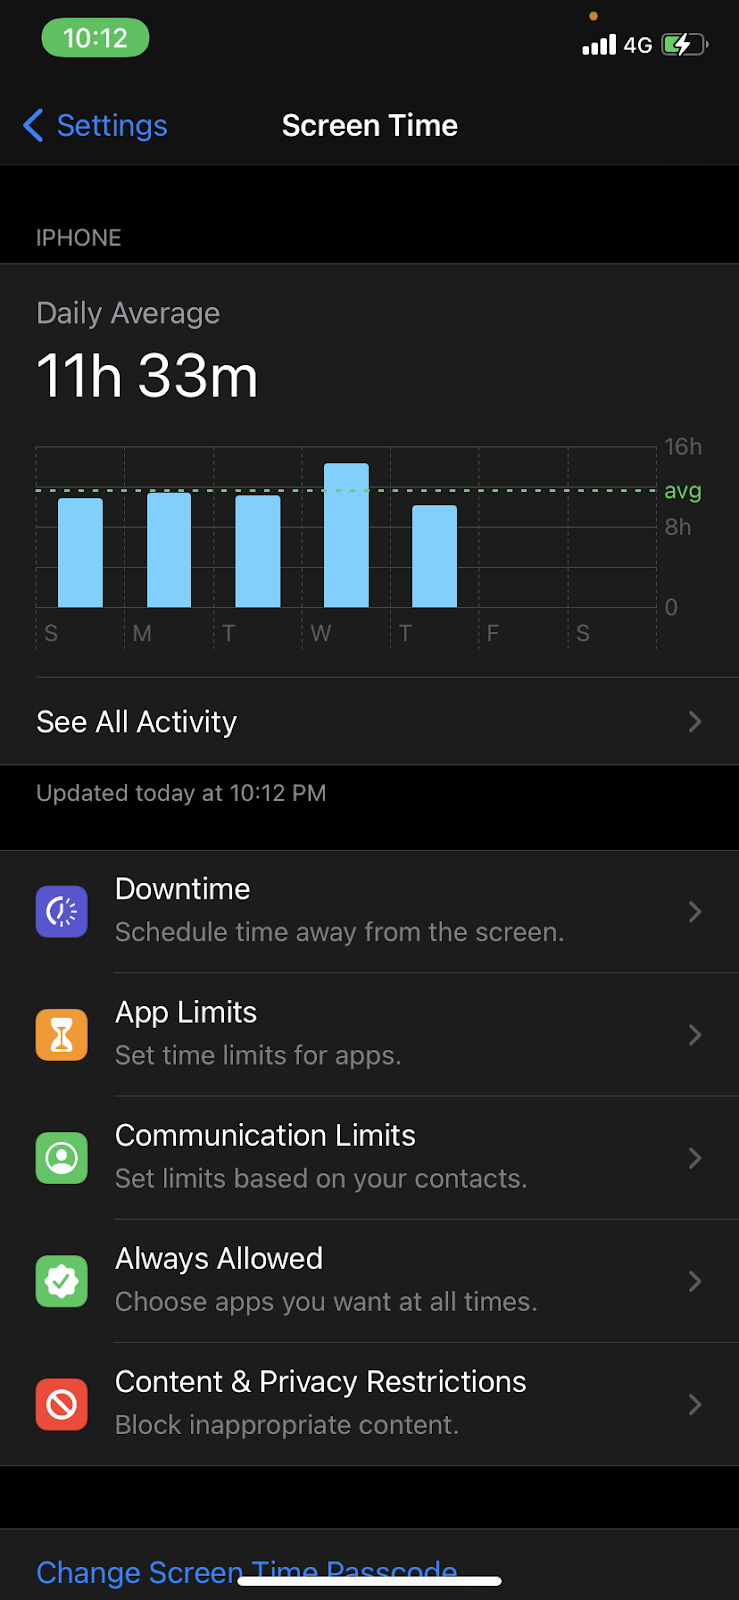 The Content & Privacy Restrictions option in the Screen Time Page